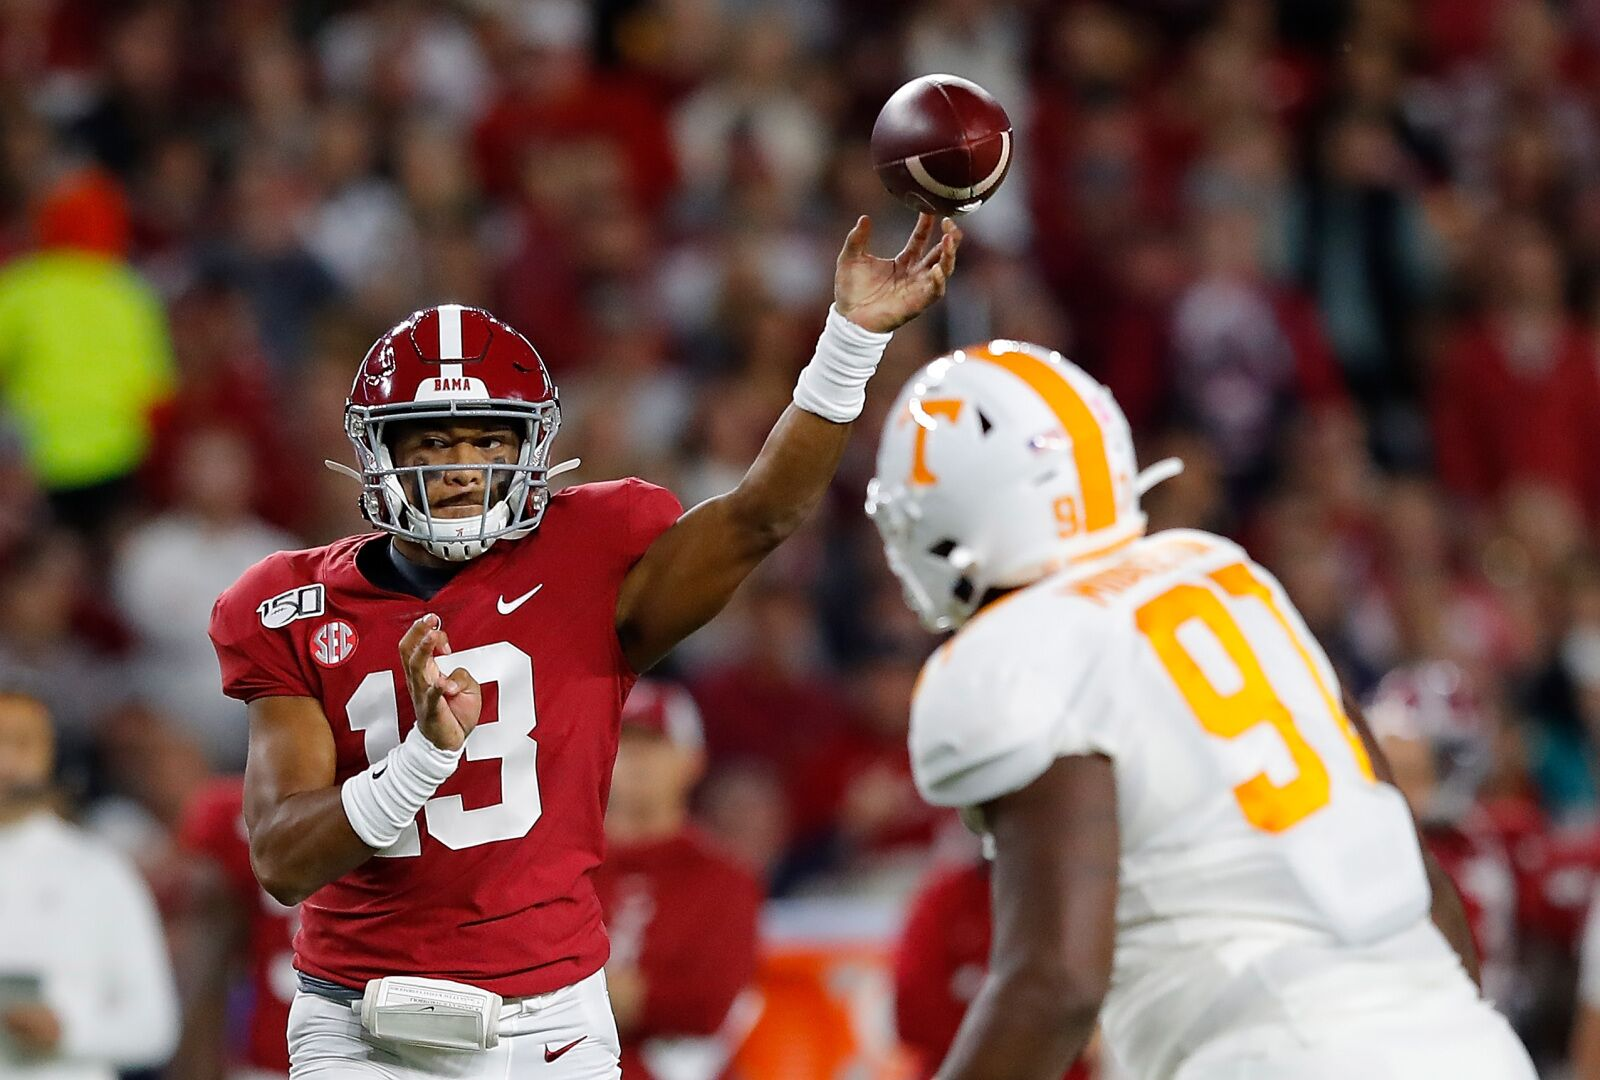 Tua Tagovailoa undergoes procedure on injured ankle, could return in time for LSU